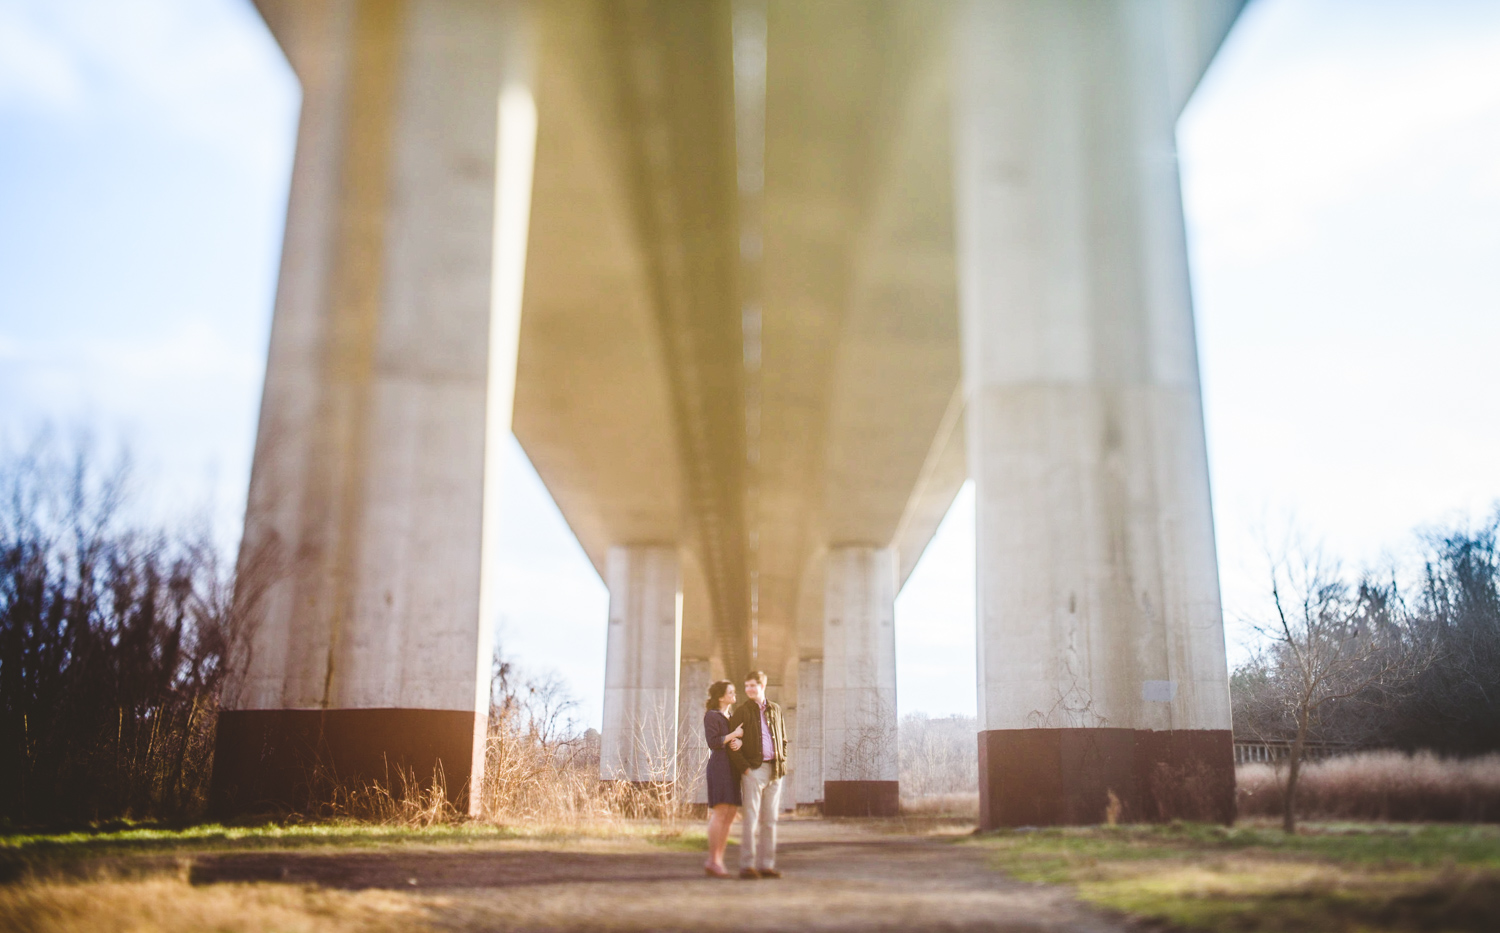 002 - Belvedere Bridge freelens richmond engagement photographer nathan mitchell photography.jpg